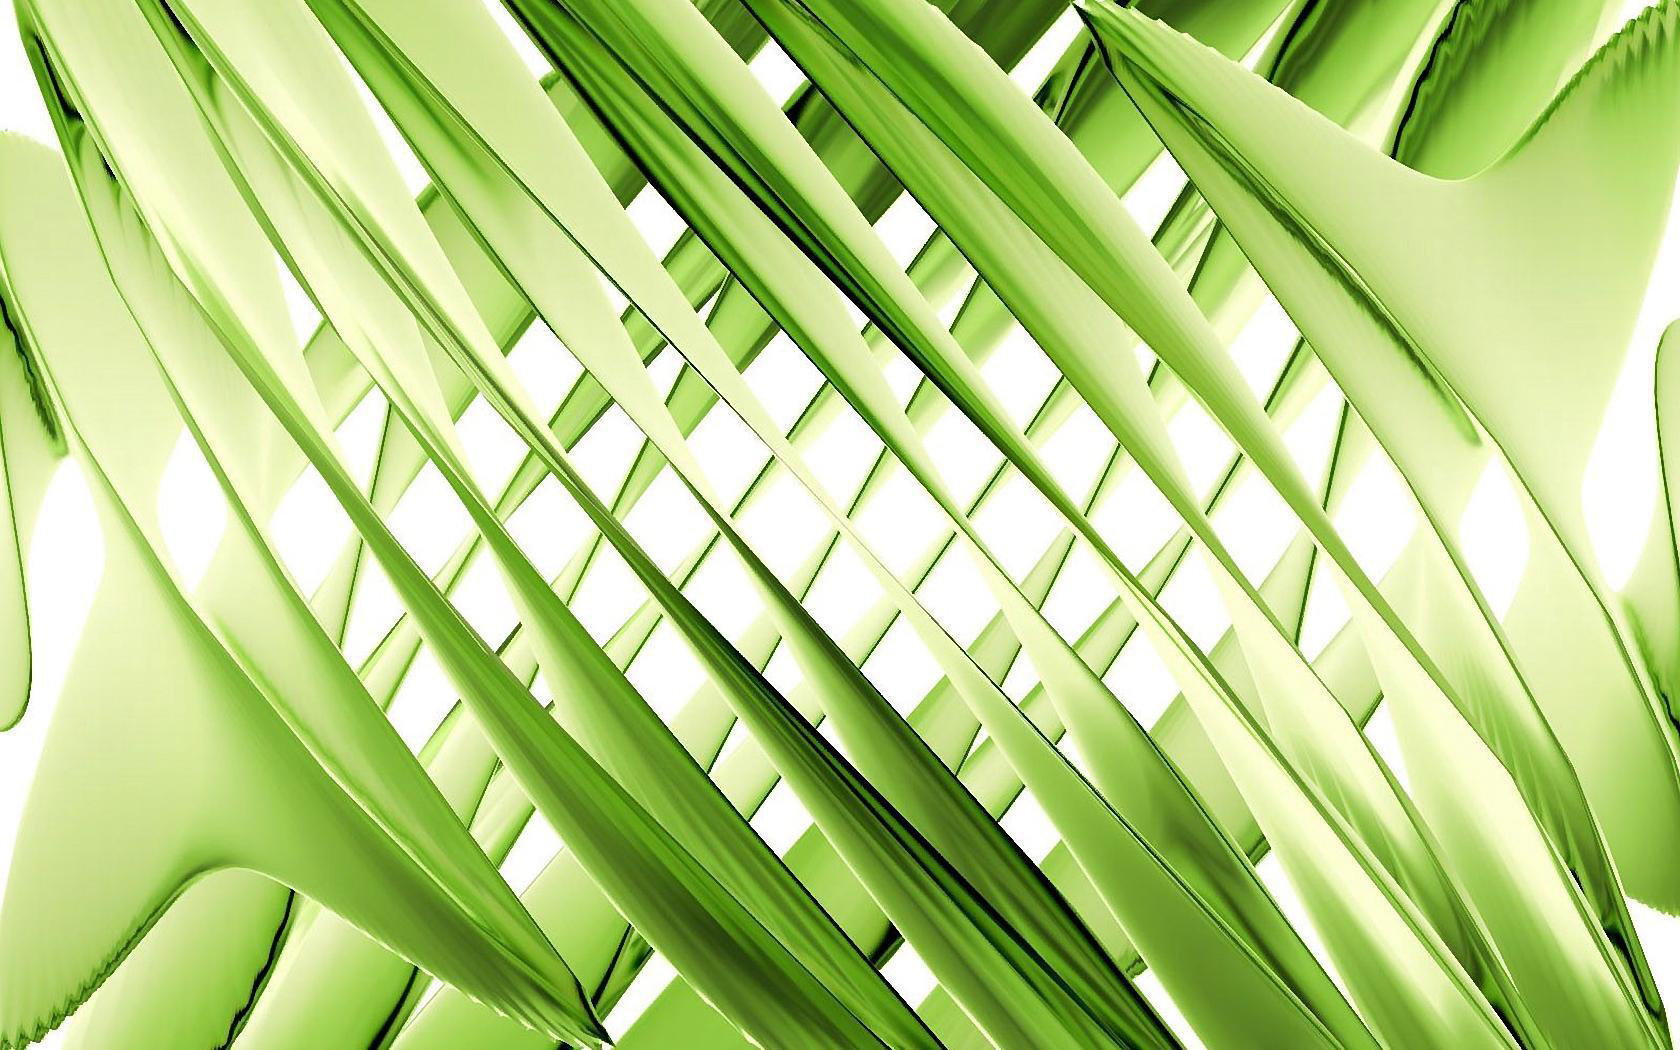 High resolution Green hd 1680x1050 background ID:127713 for PC